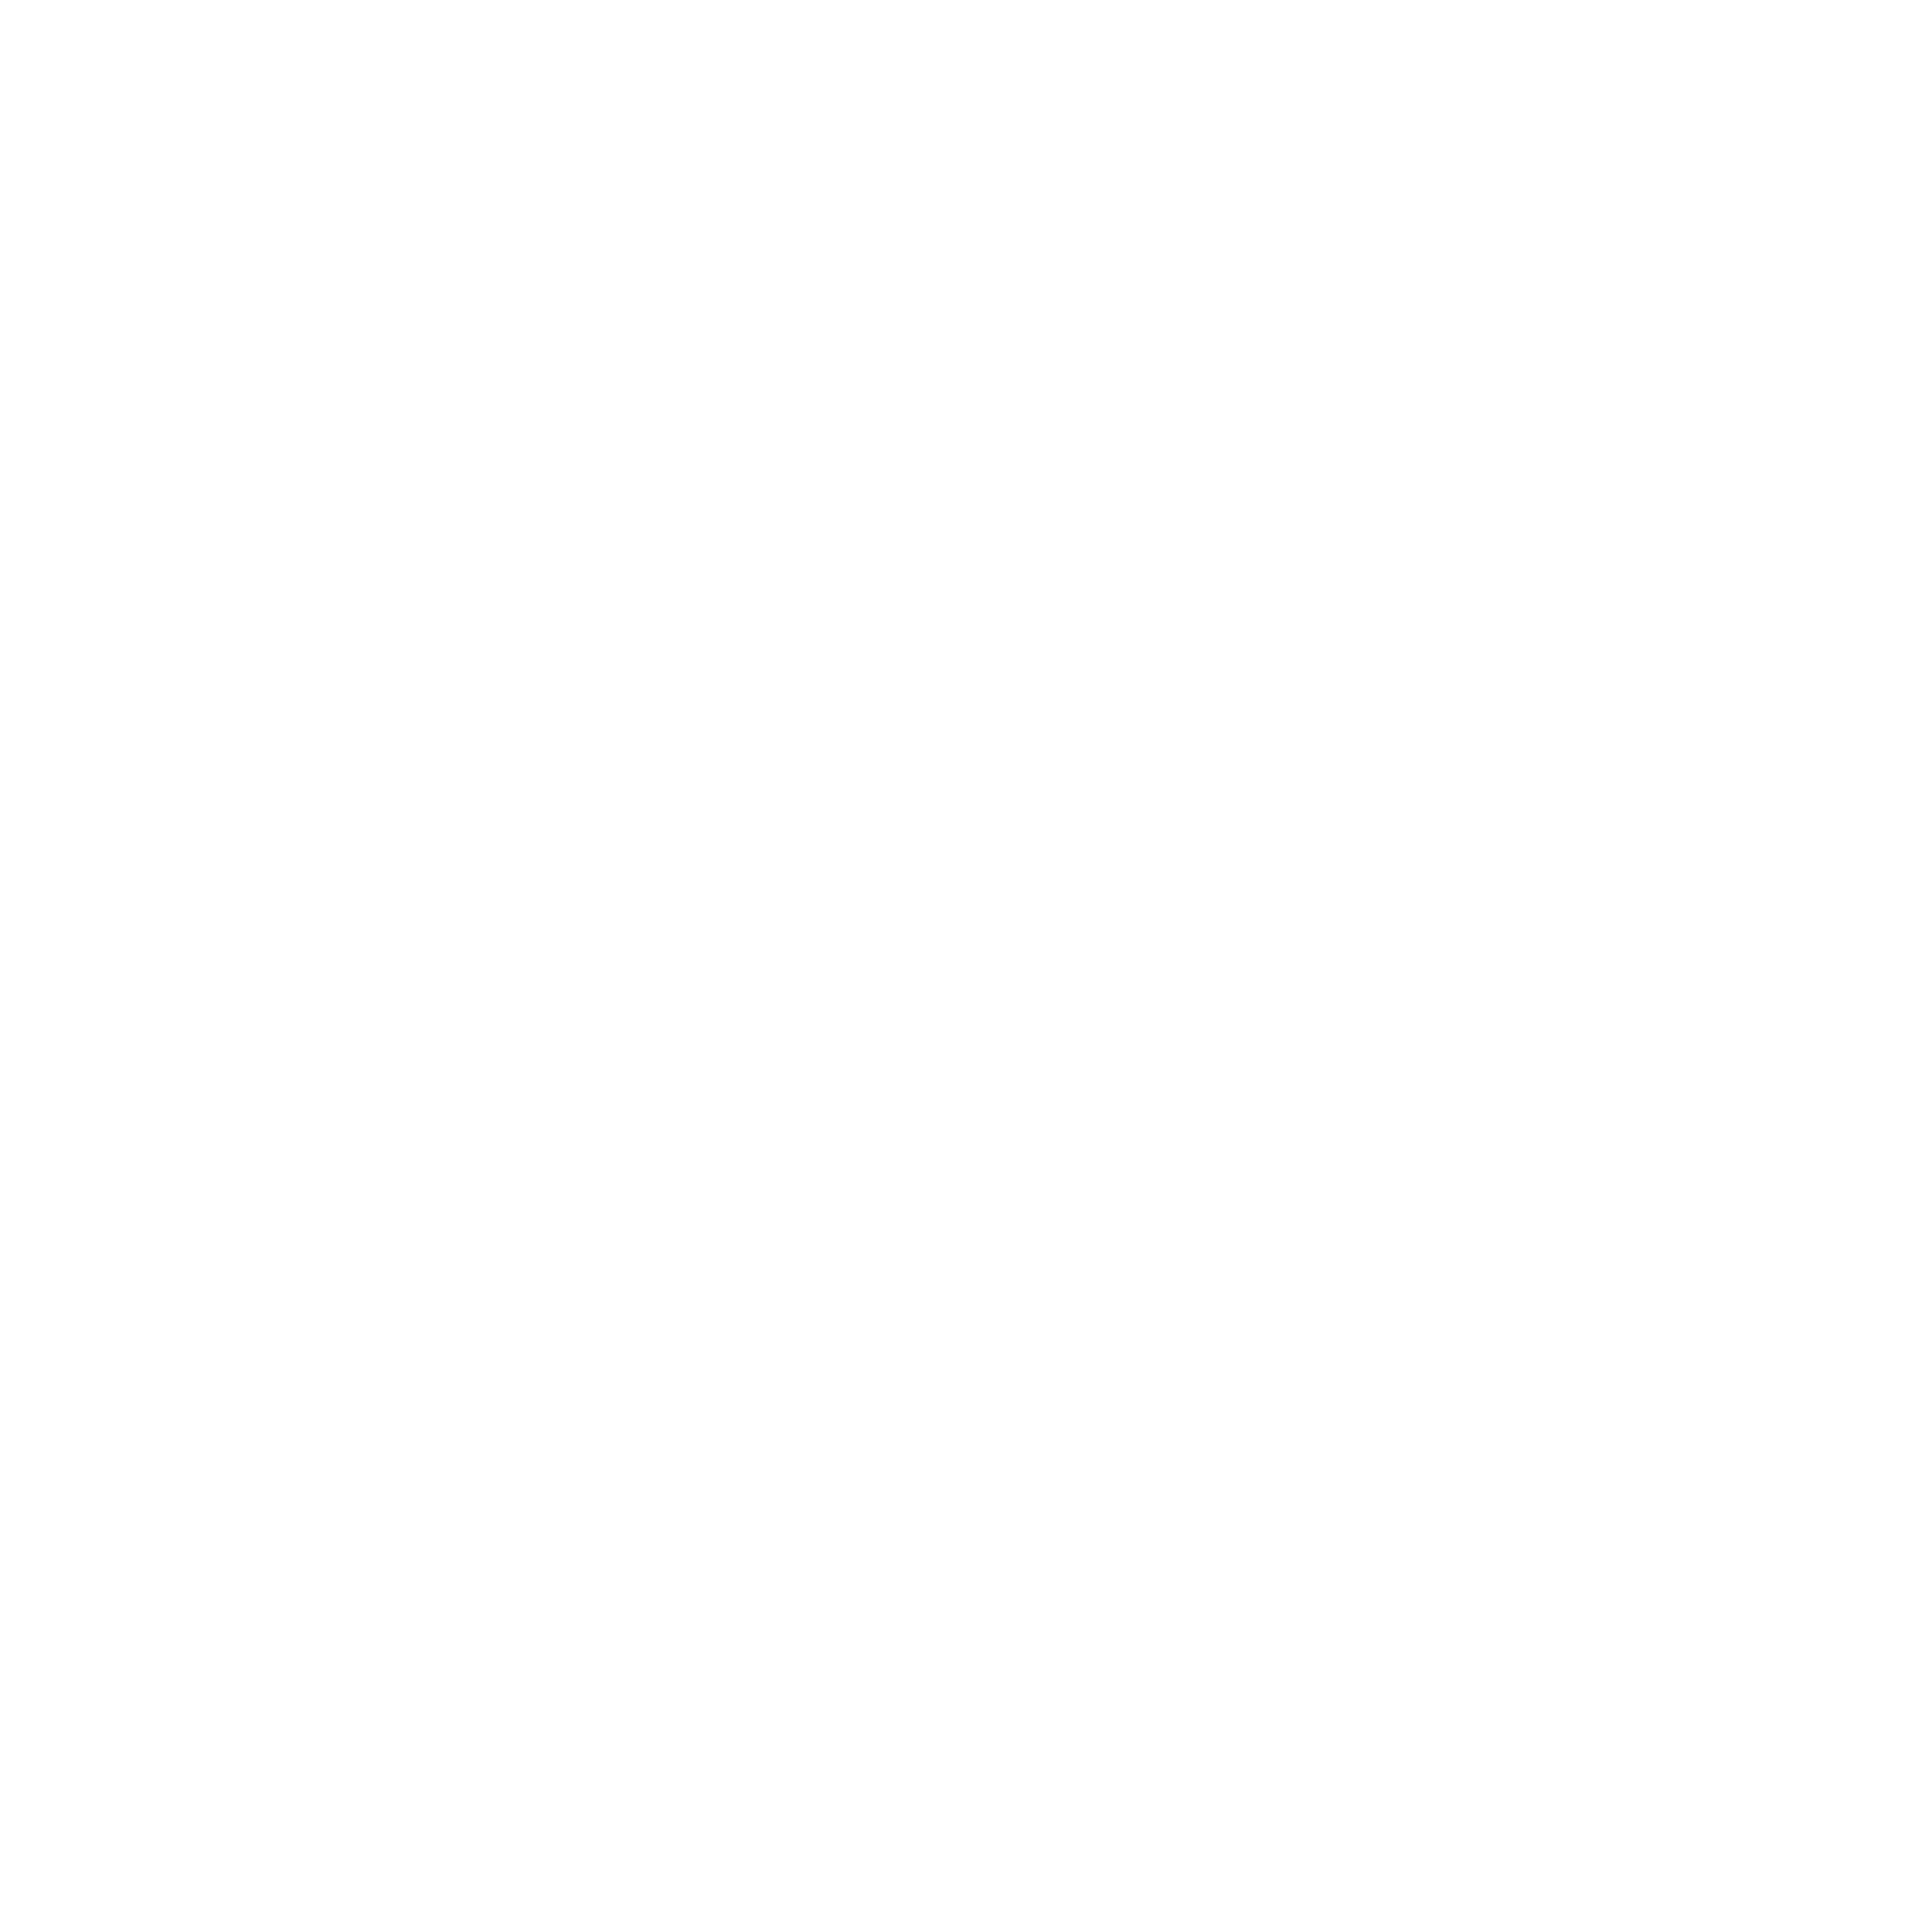 Sk gaming logo png. Team is a leading